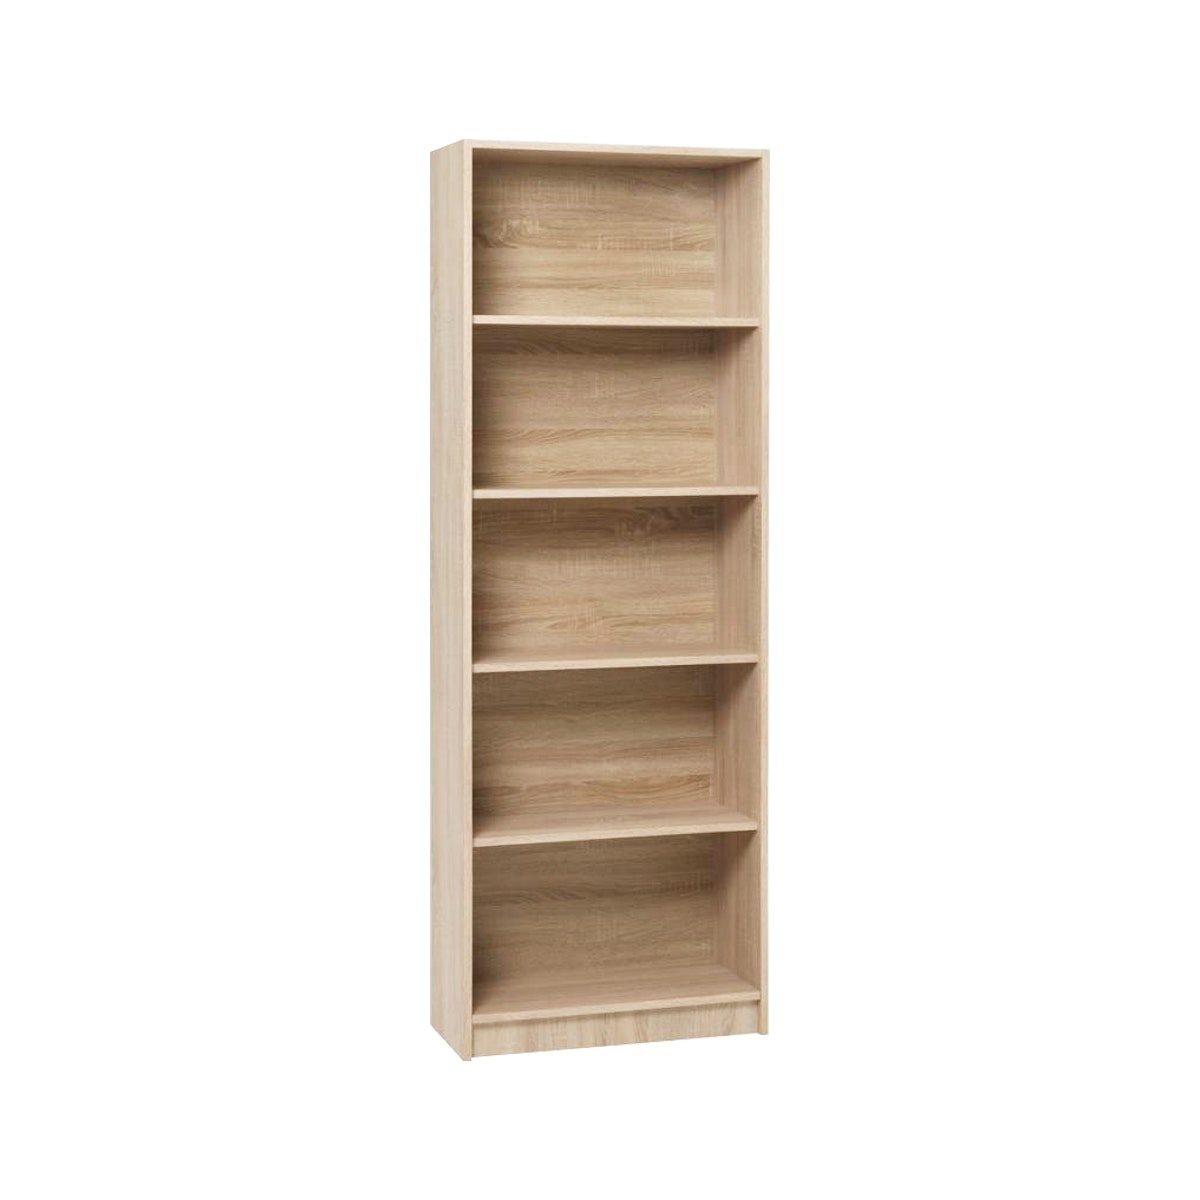 JYSK Bookcase 5Shelves Horsens 70X30X197Cm Brushed Oak